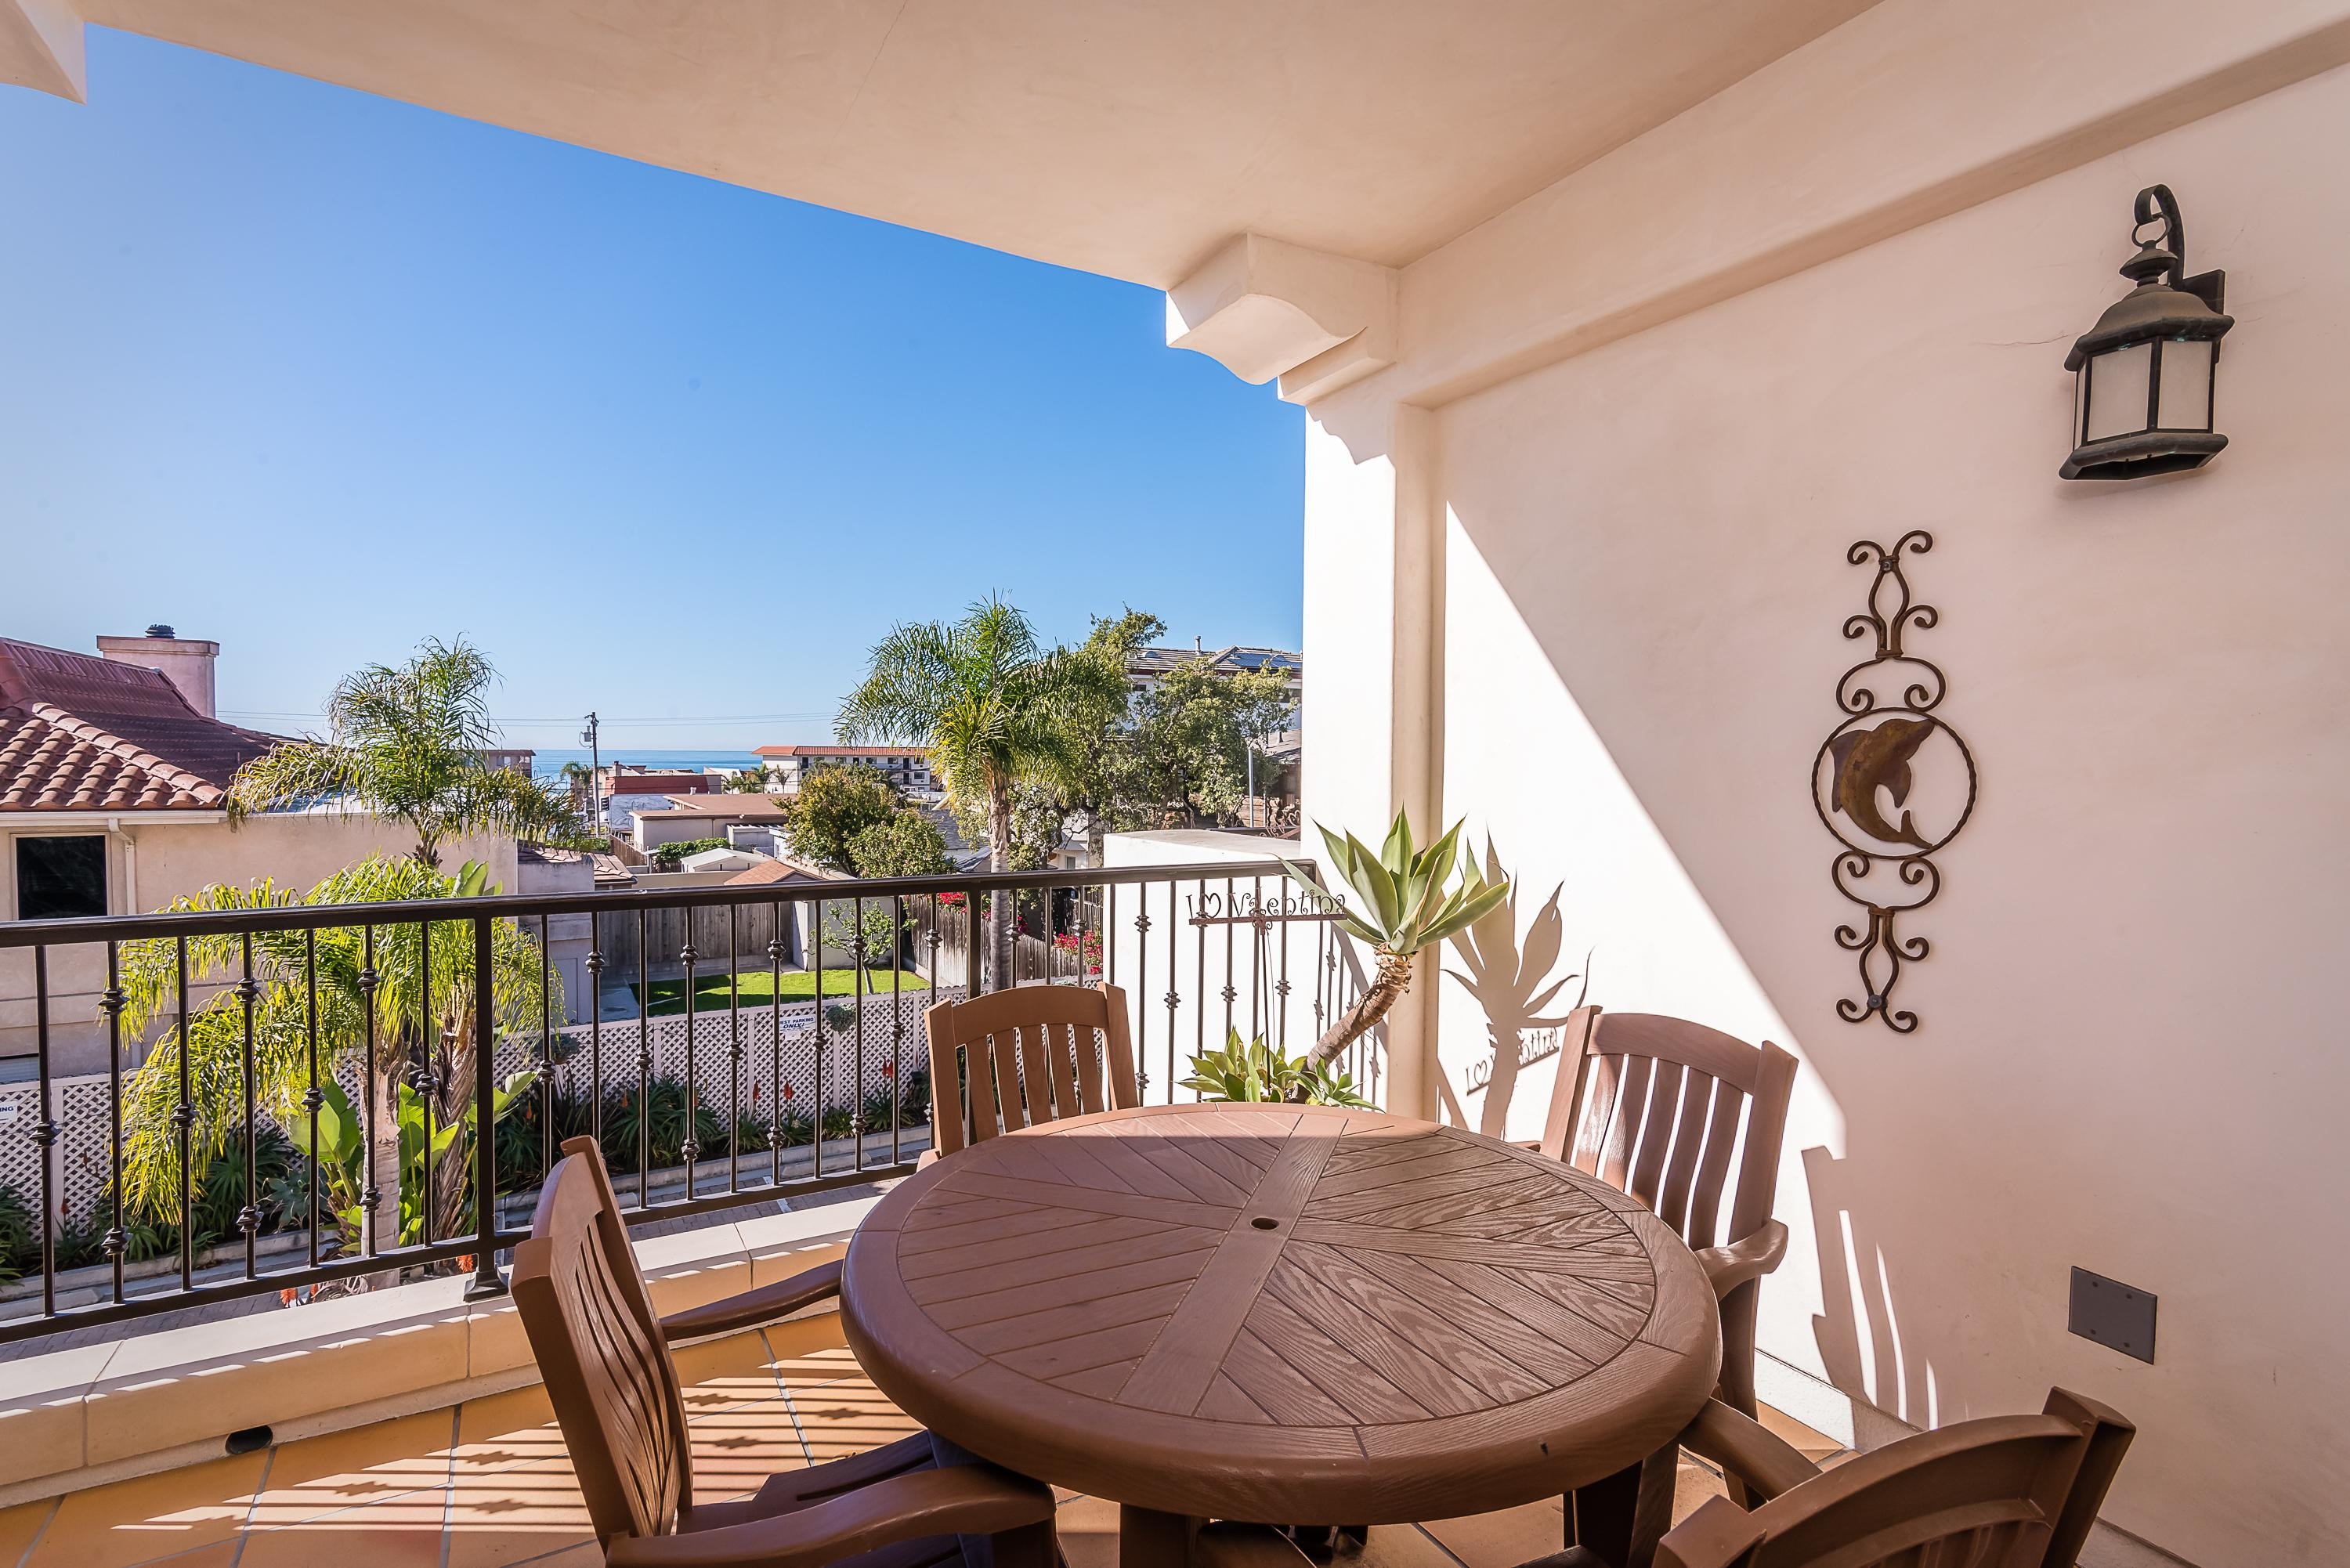 Welcome to Pismo Beach! Your rental is professionally managed by TurnKey Vacation Rentals.